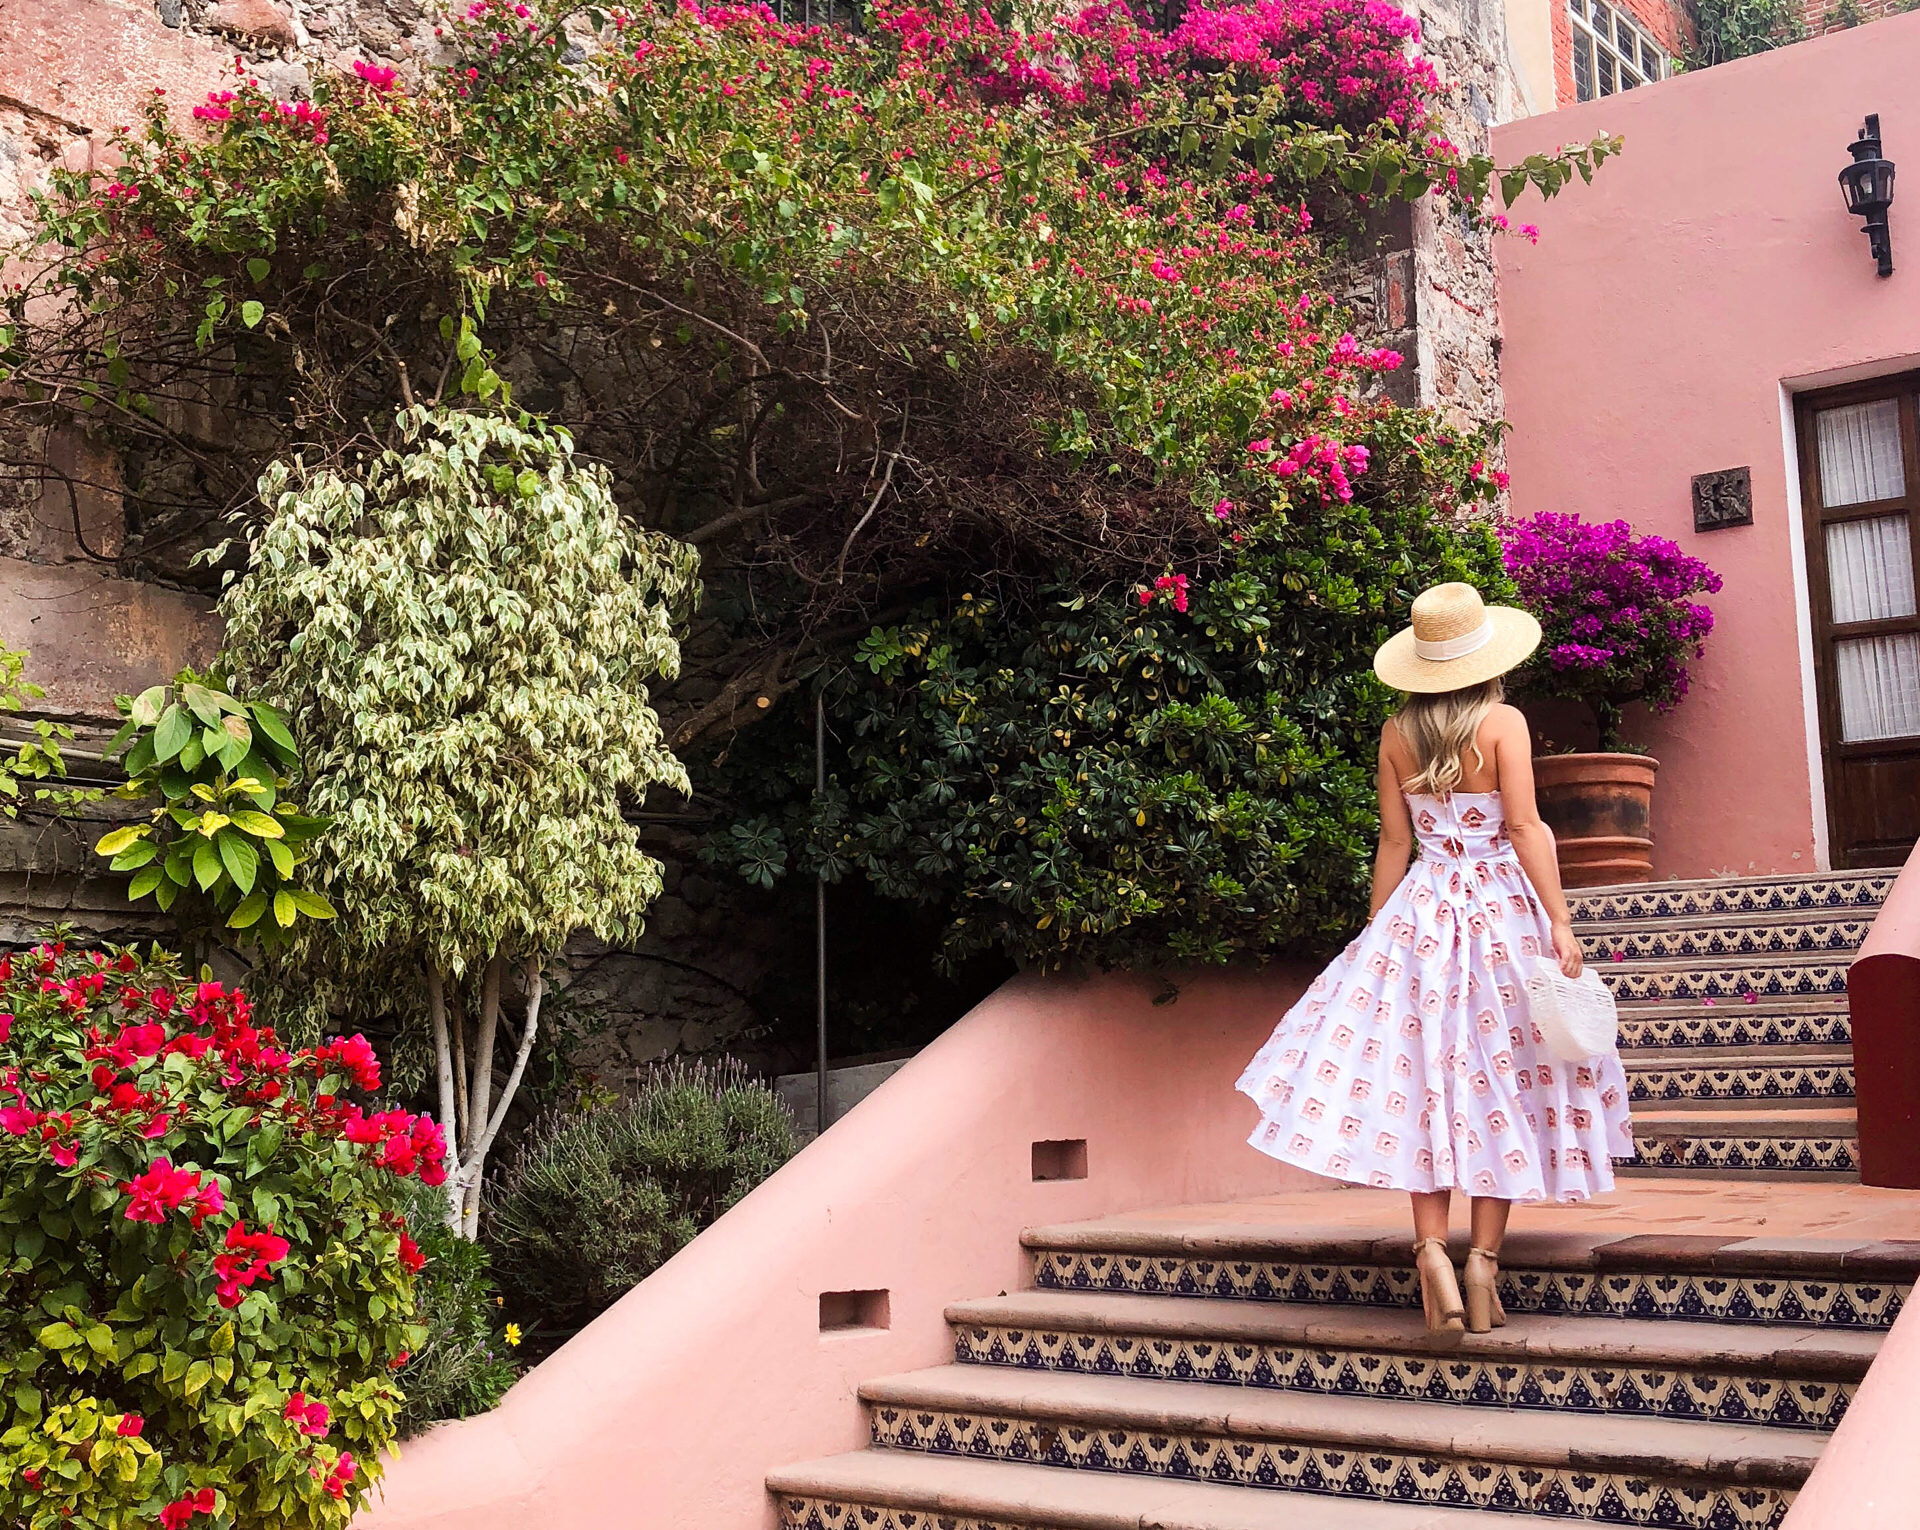 Caroline Constas Dress, Caroline Constas Gretta Dress, Mexico, San Miguel, Fashion Blogger, Travel Blogger, San Miguel Travel Guide